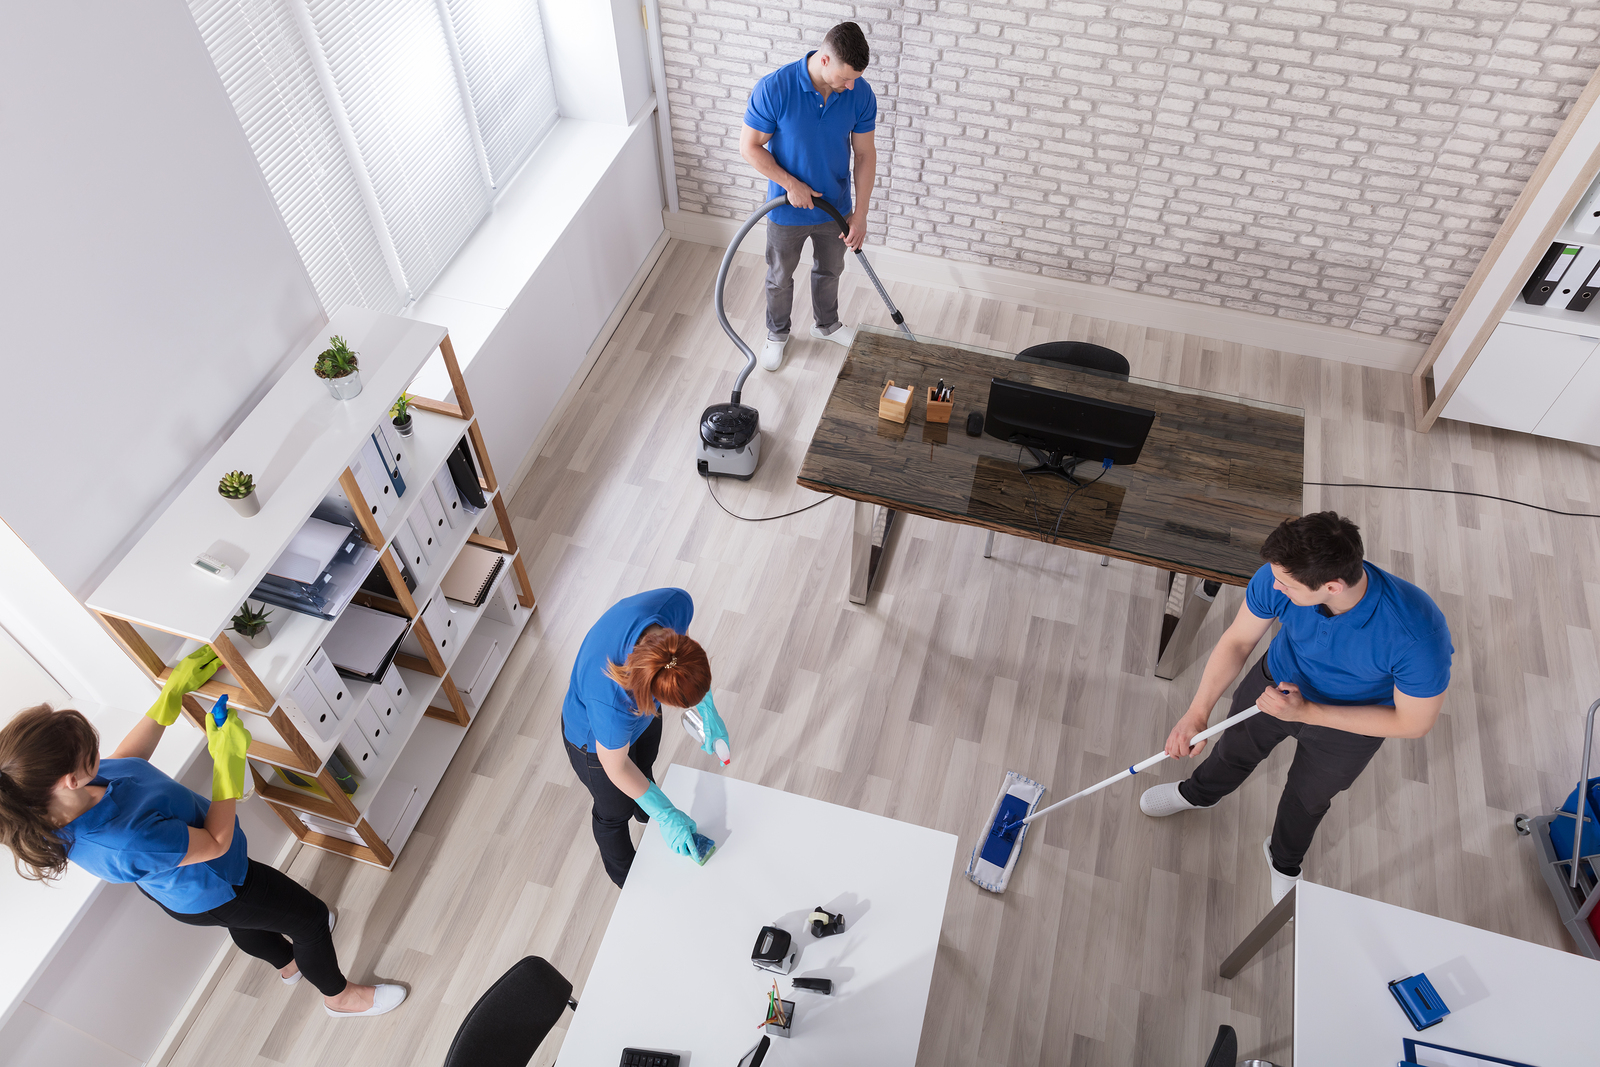 Why Hire A Professional Service To Clean Your Commercial Property?